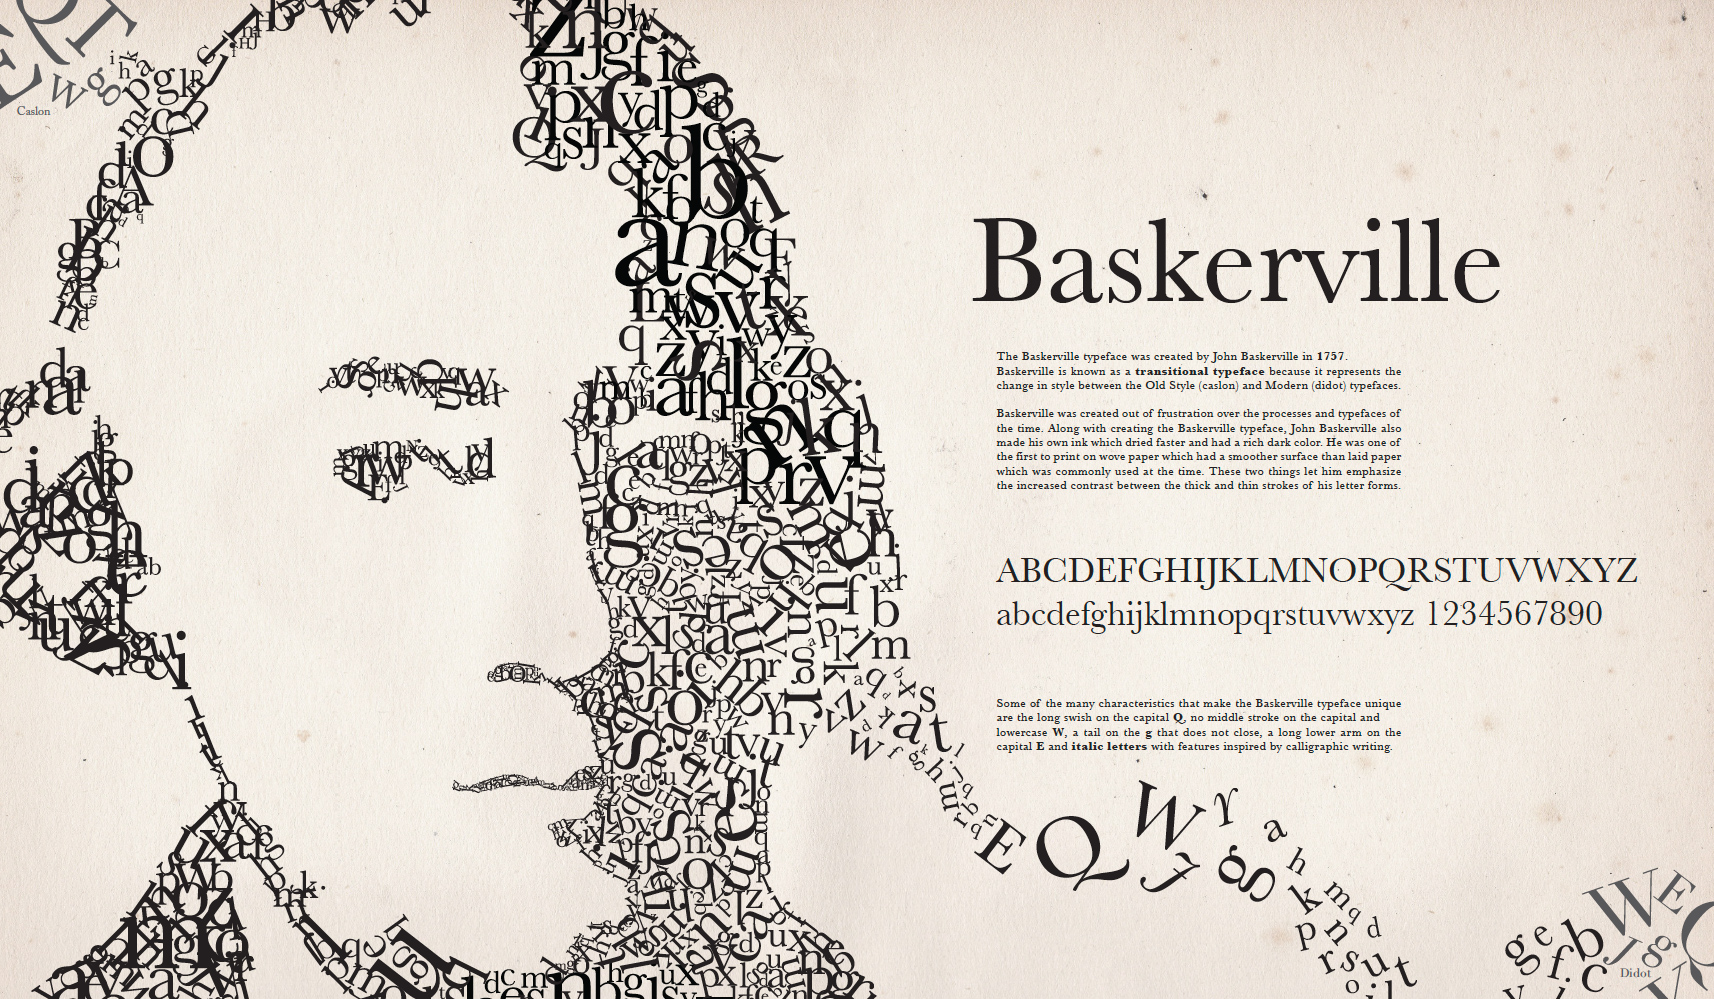 john baskerville an influential typographer essay Typeface essays & research papers  standard font was designed by isaac moore, (john baskerville)  as being an influential dutch type designer and has.